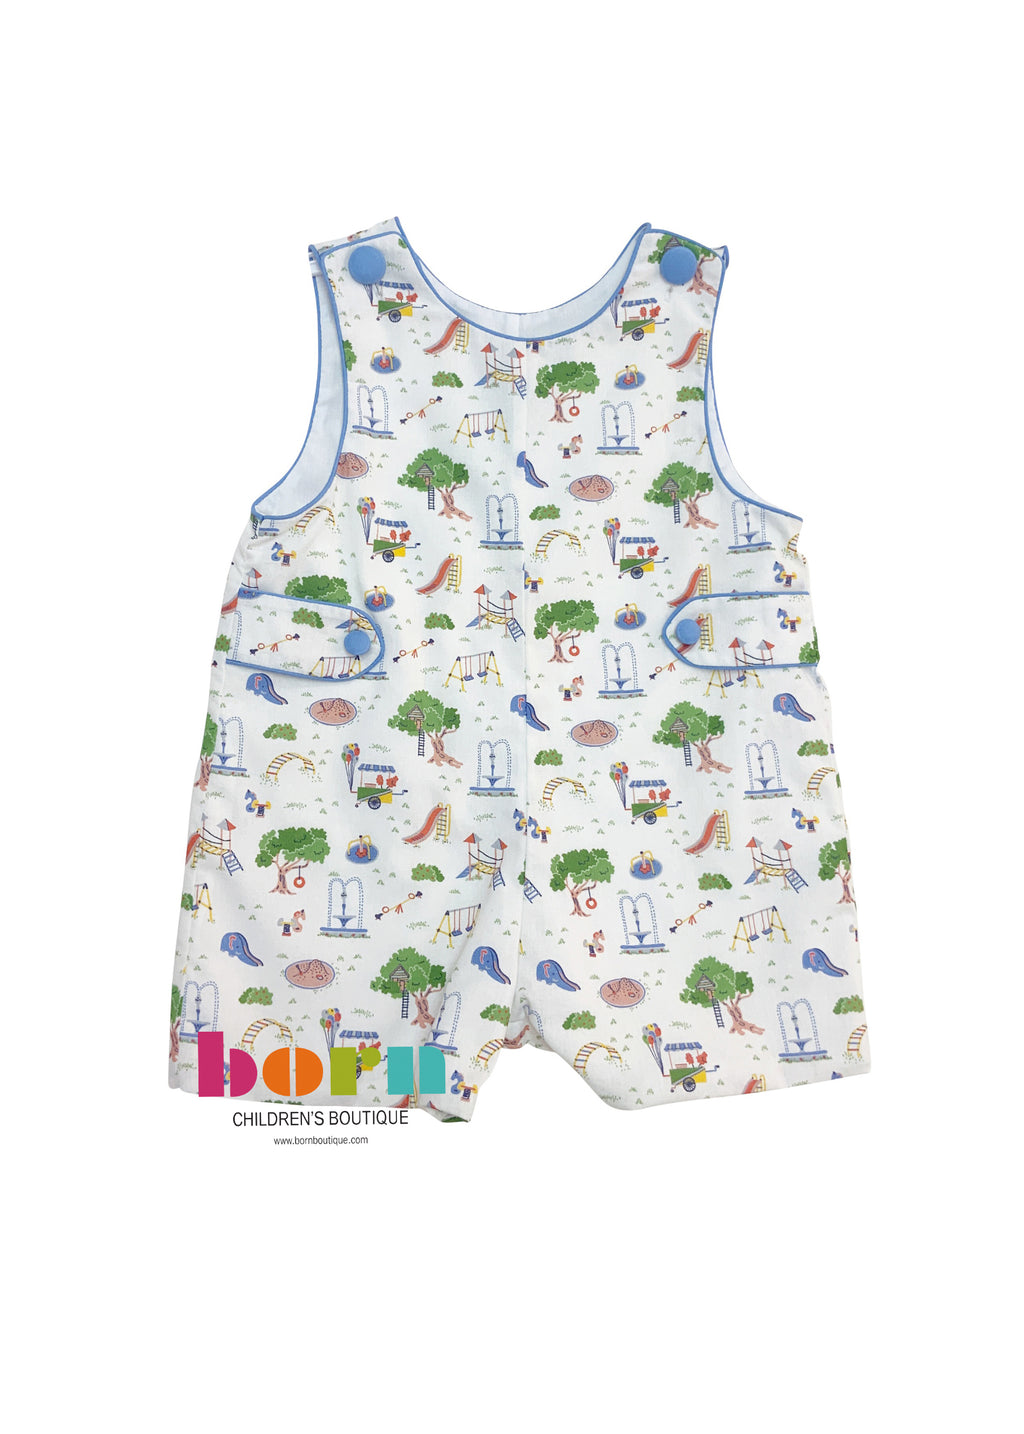 Boy's Jon Jon - Playground Print - Born Childrens Boutique